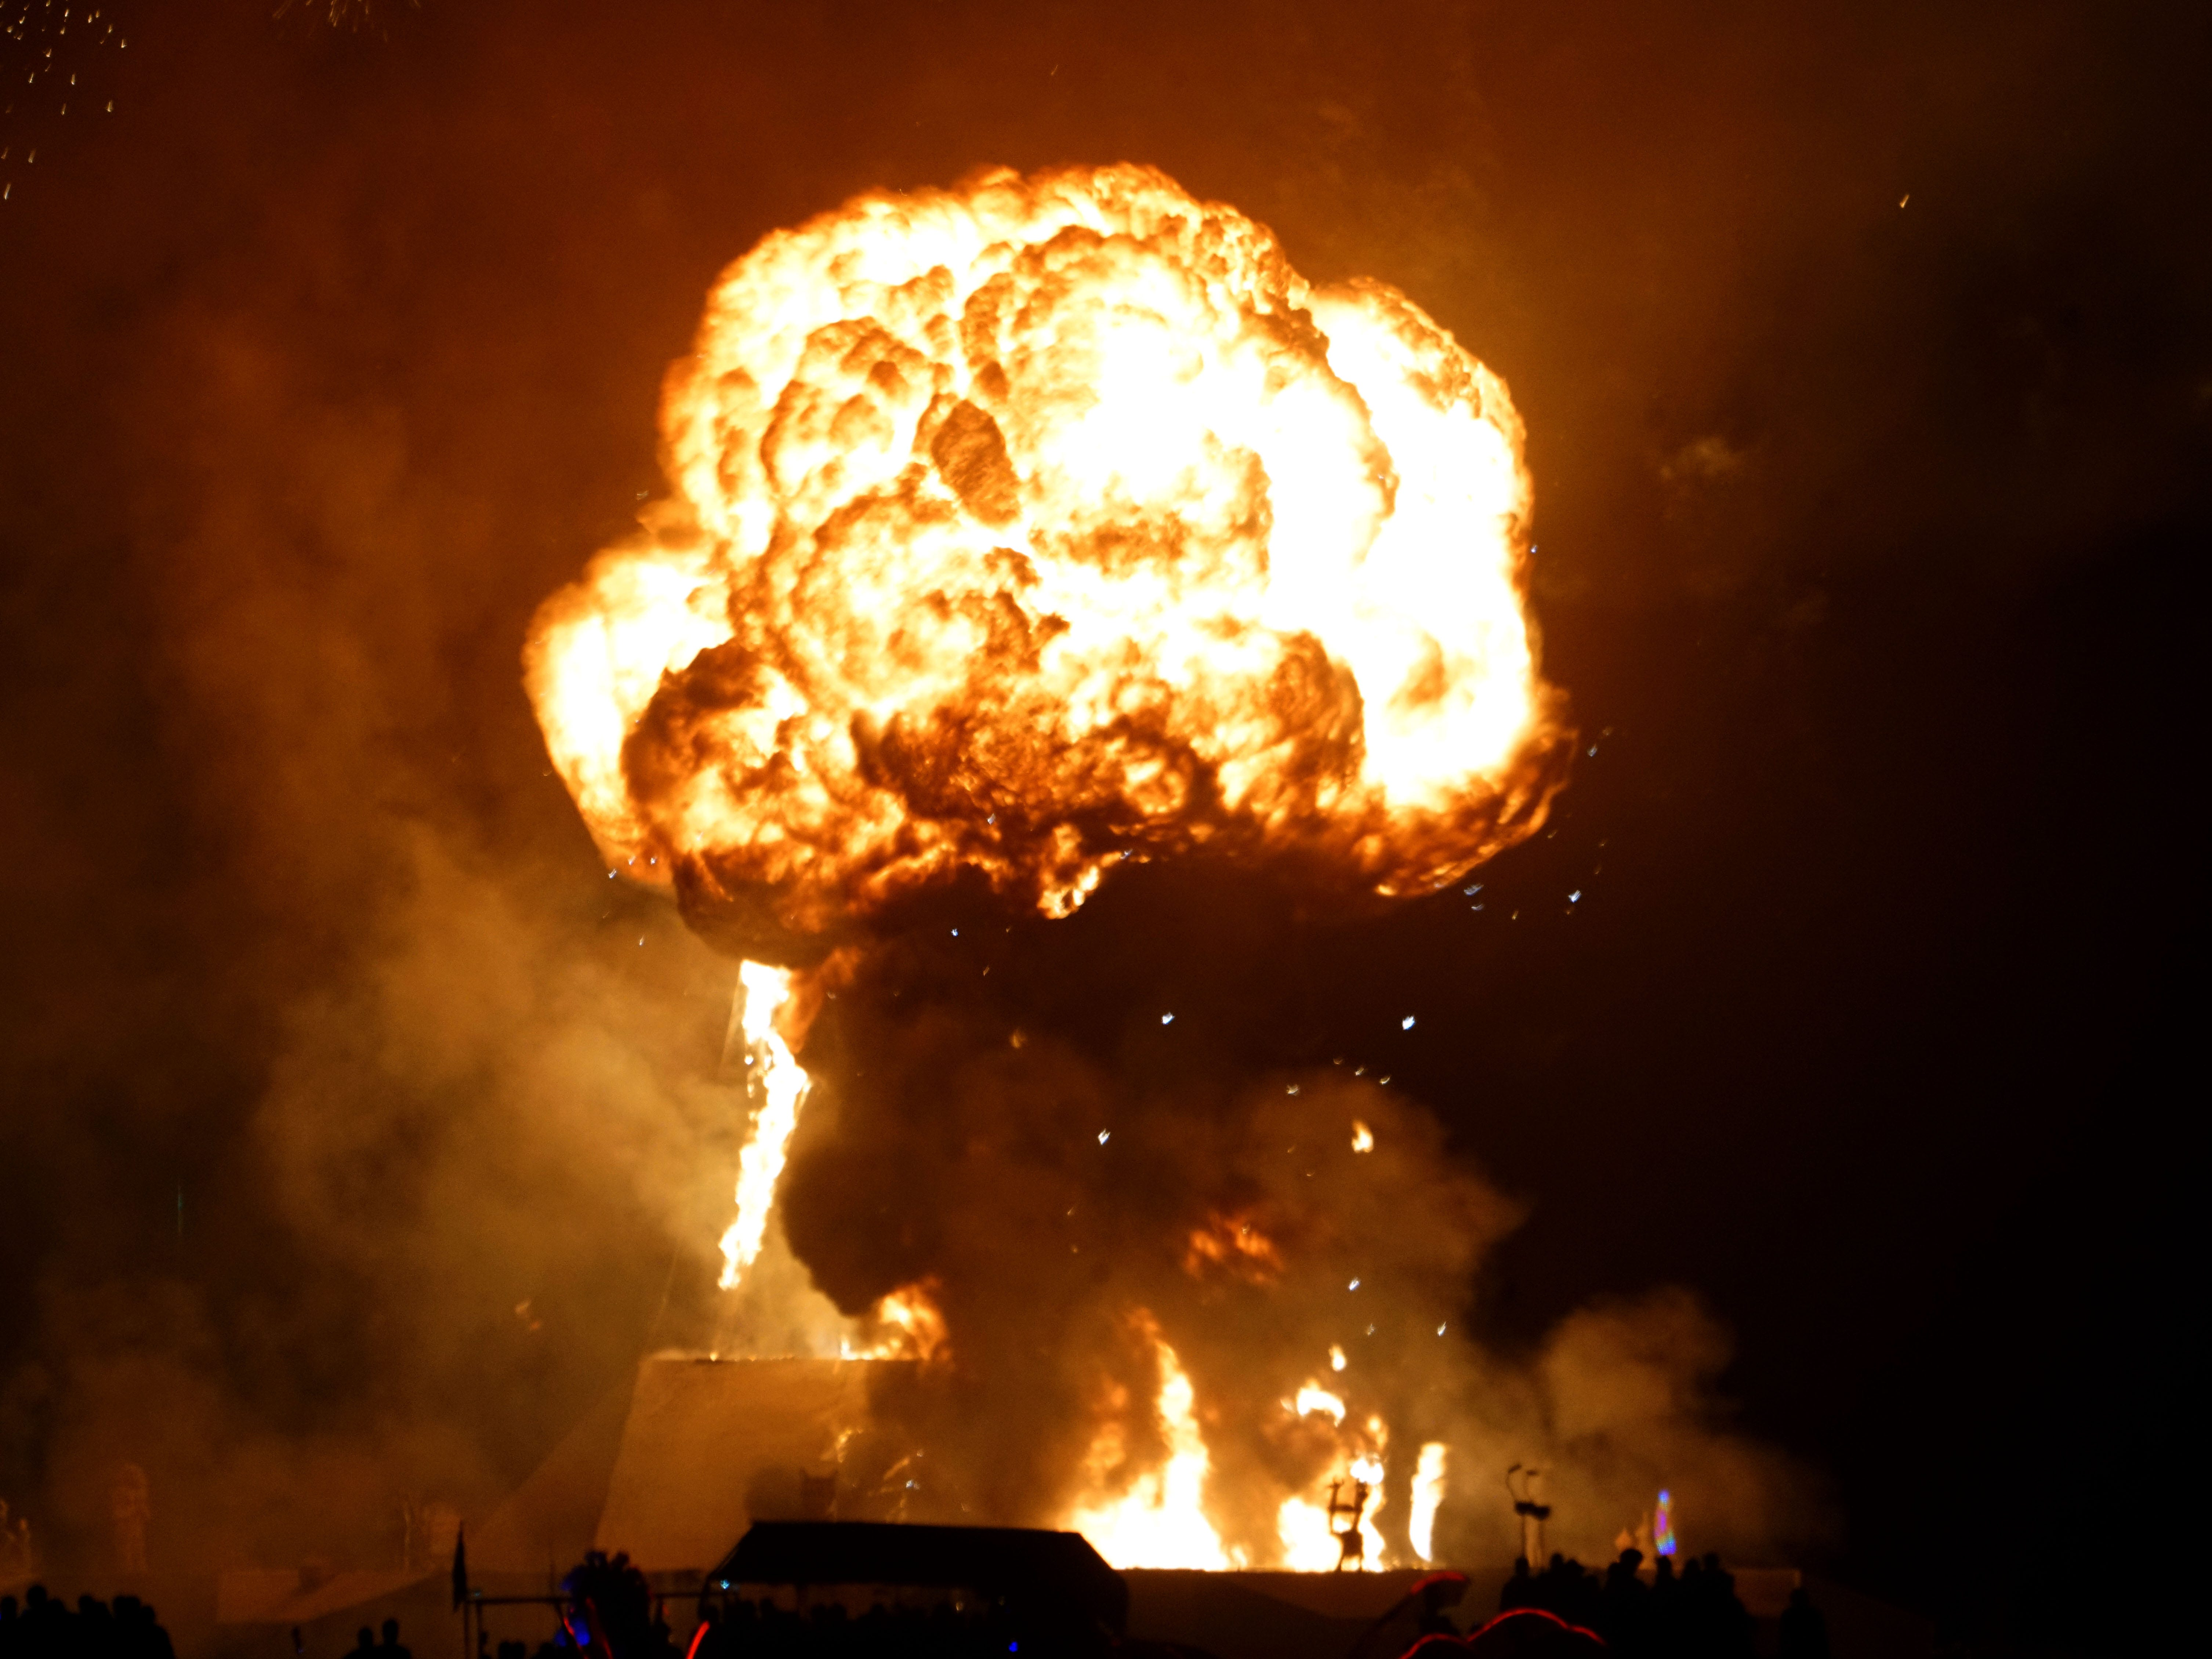 A massive explosion dwarfs the approximately 100-foot-tall Man effigy as it burns on Saturday night during a raucous celebration at Burning Man Sept. 2, 2018.